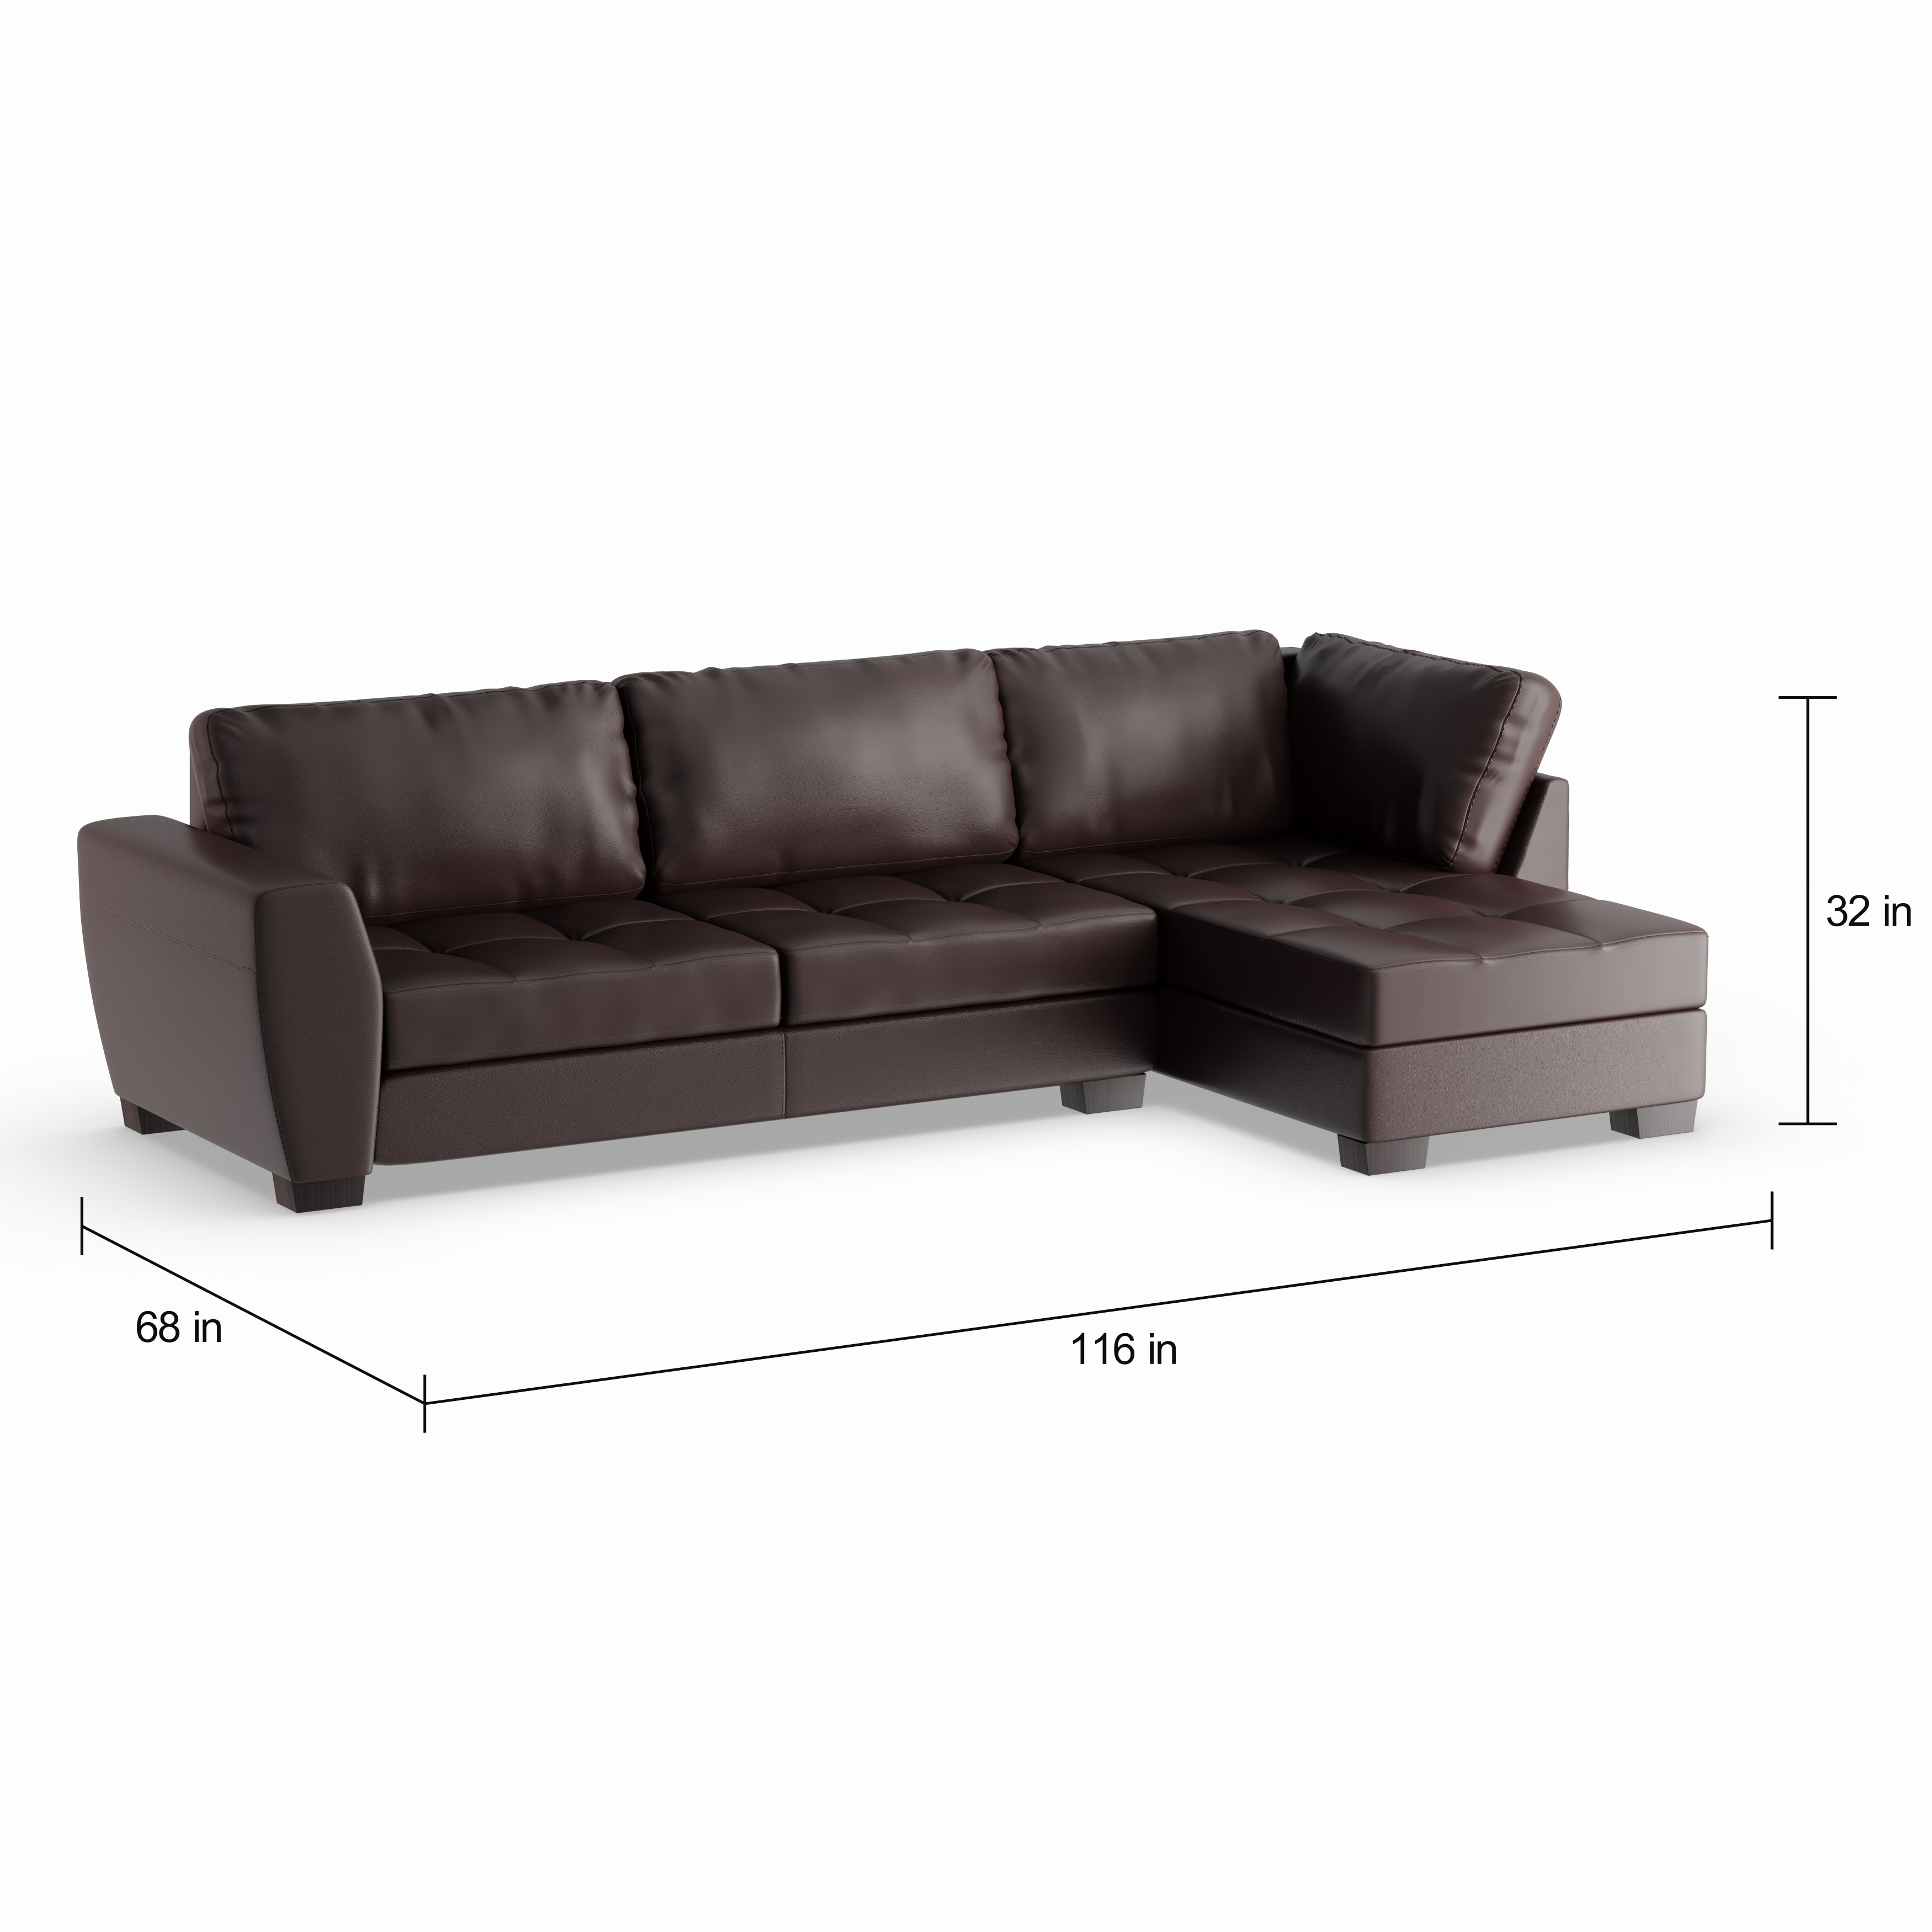 Maison Rouge Aled Brown Bonded Leather Modern Sectional Sofa Set With Right Facing Chaise Free Shipping Today 20543374